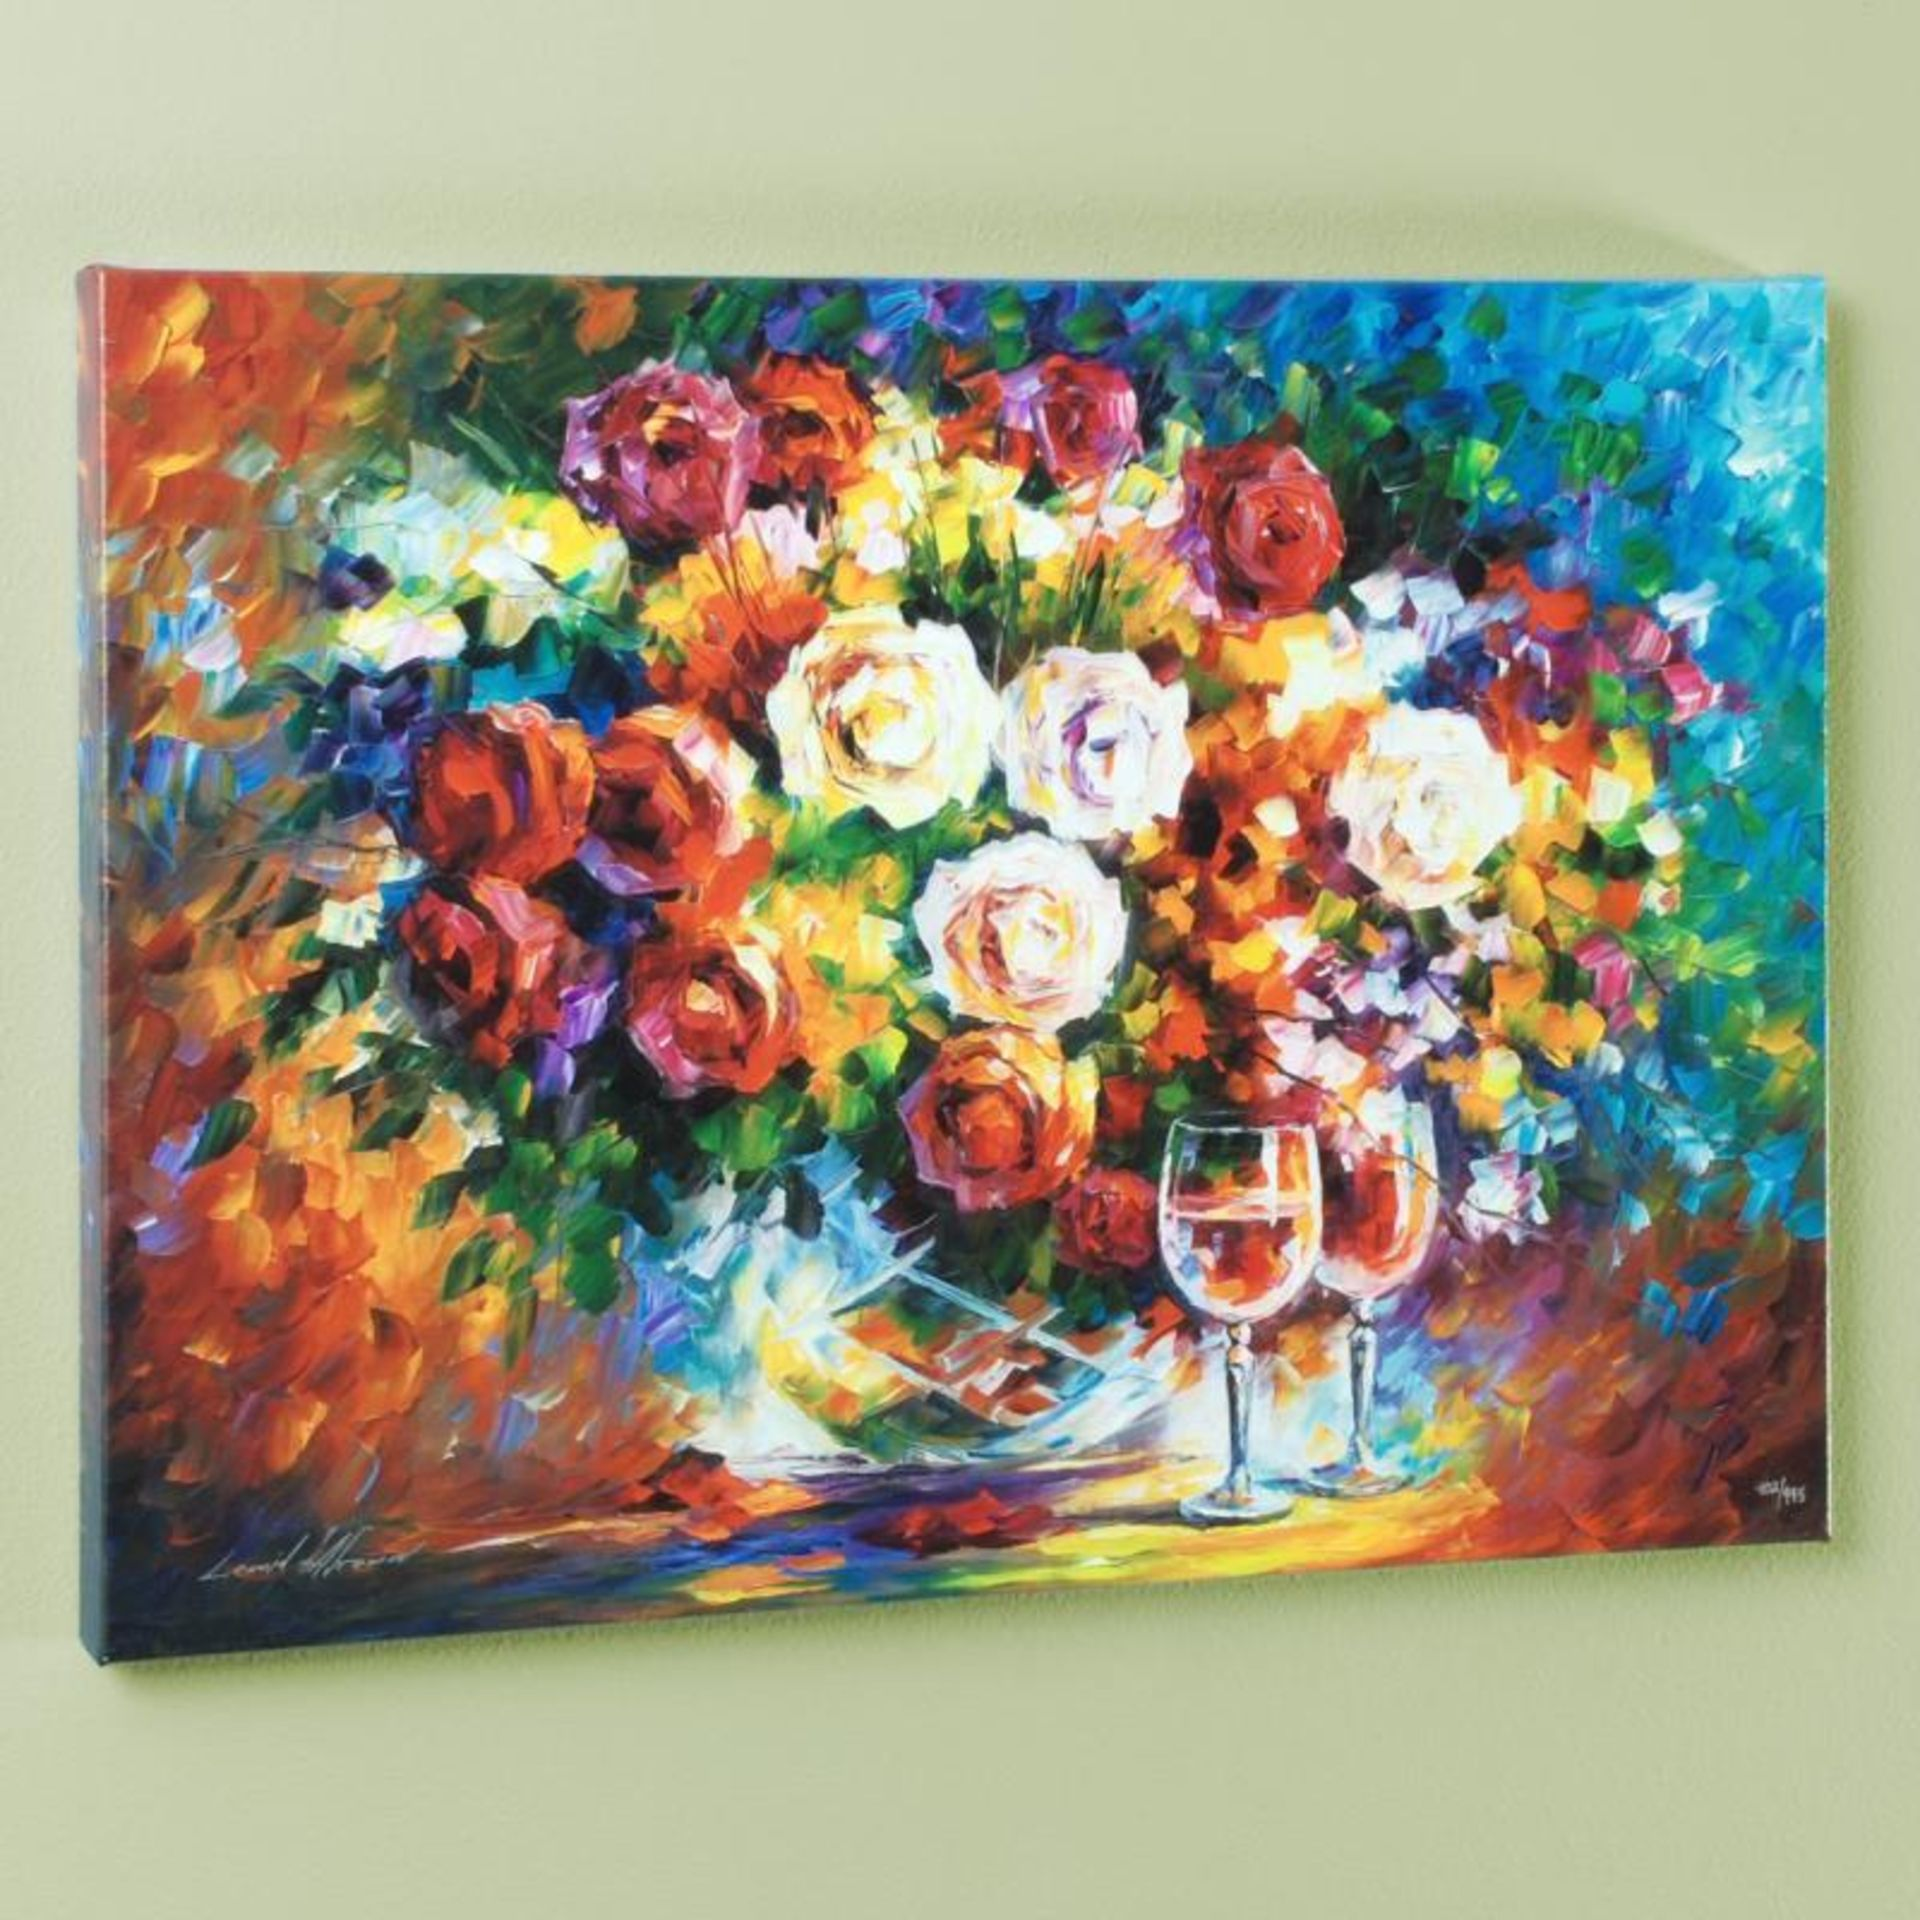 """Leonid Afremov (1955-2019) """"Roses and Wine"""" Limited Edition Giclee on Canvas, Nu - Image 3 of 3"""